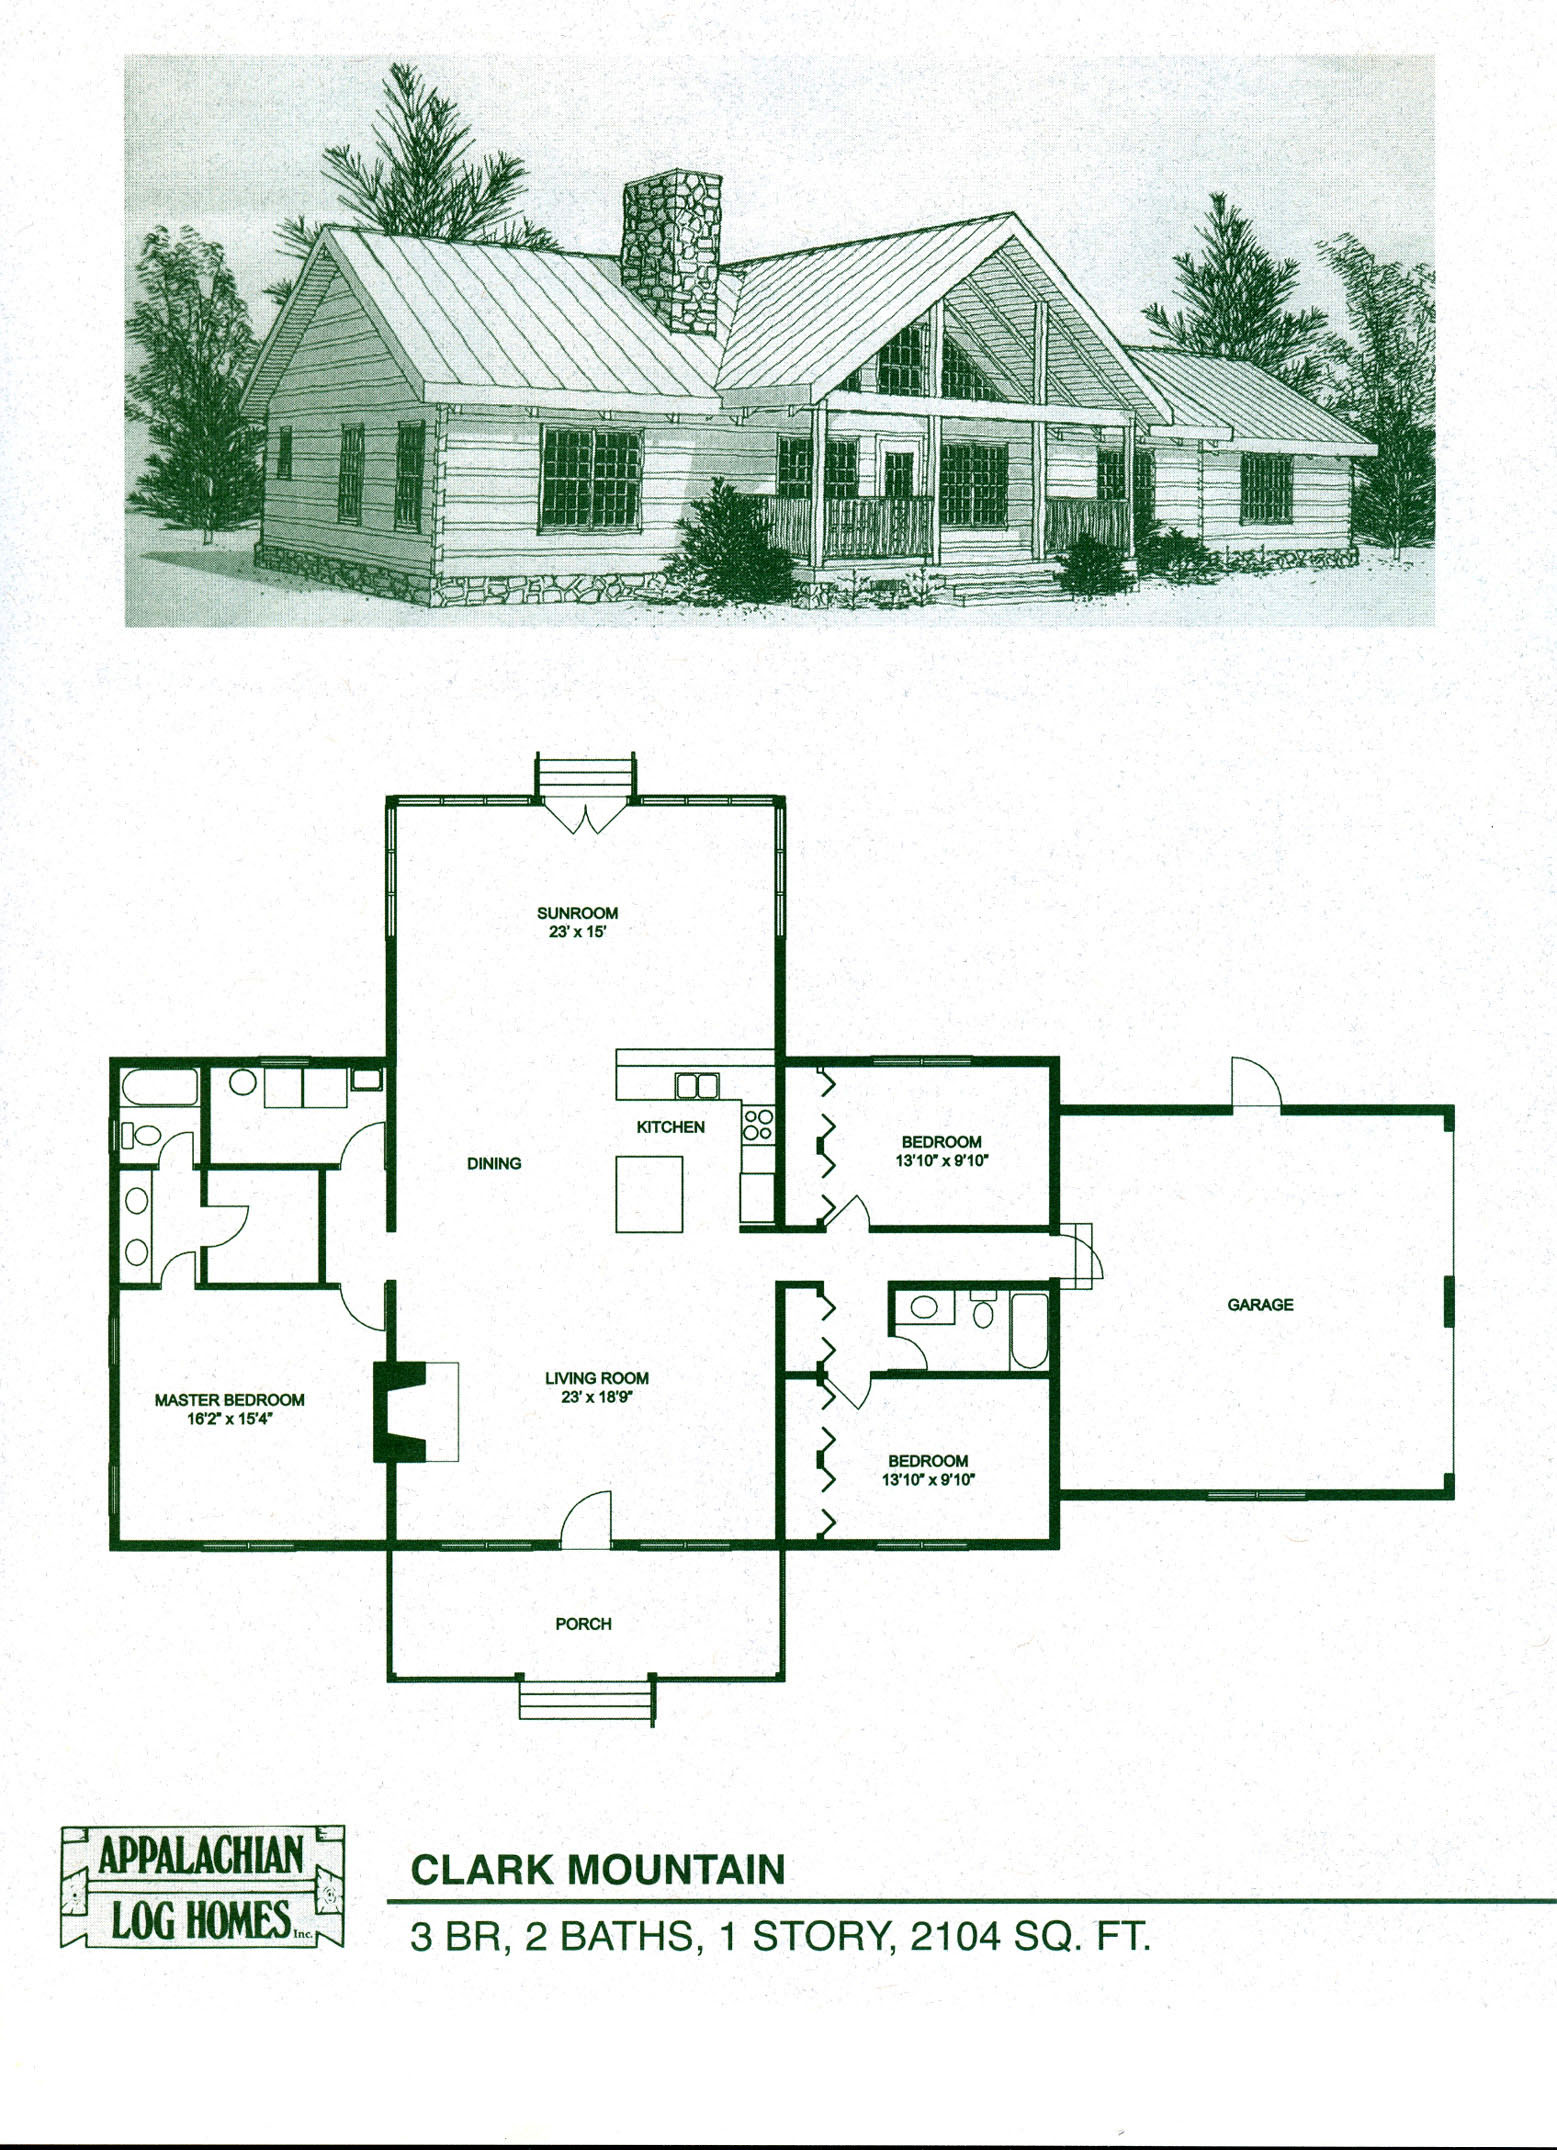 Log cabin loft 2 bedroom log cabin homes floor plans log for Log cabin floor plans with 2 bedrooms and loft